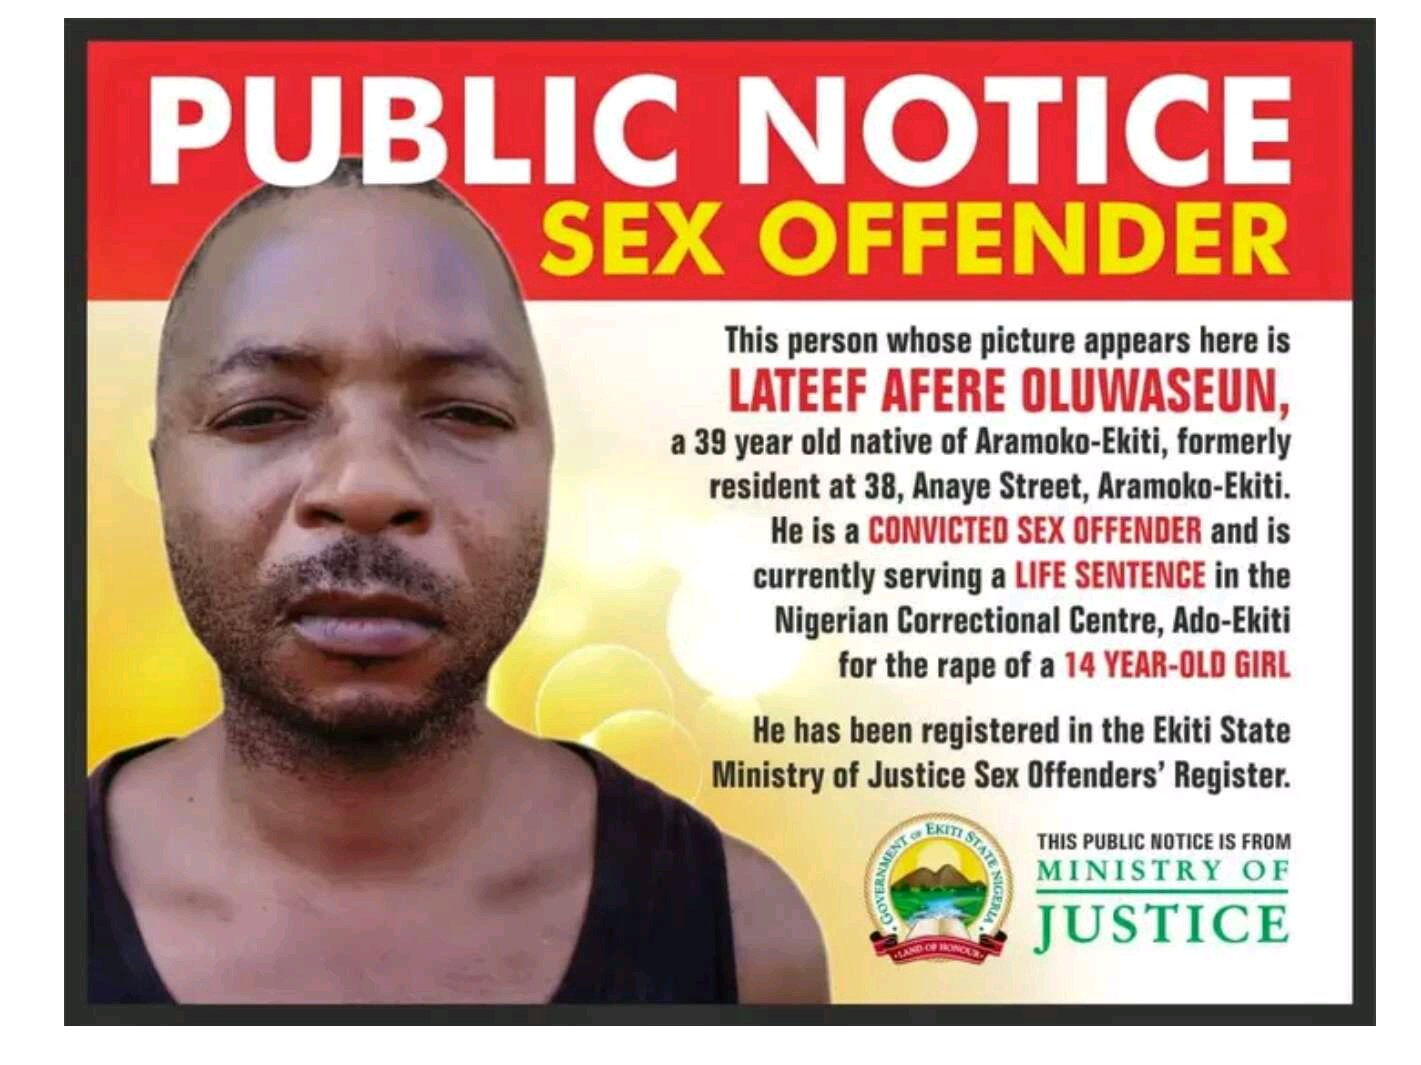 Ekiti State Government Publishes Name, Photo Of Man Jailed For Life For Sleeping With 14- Year- Old Girl